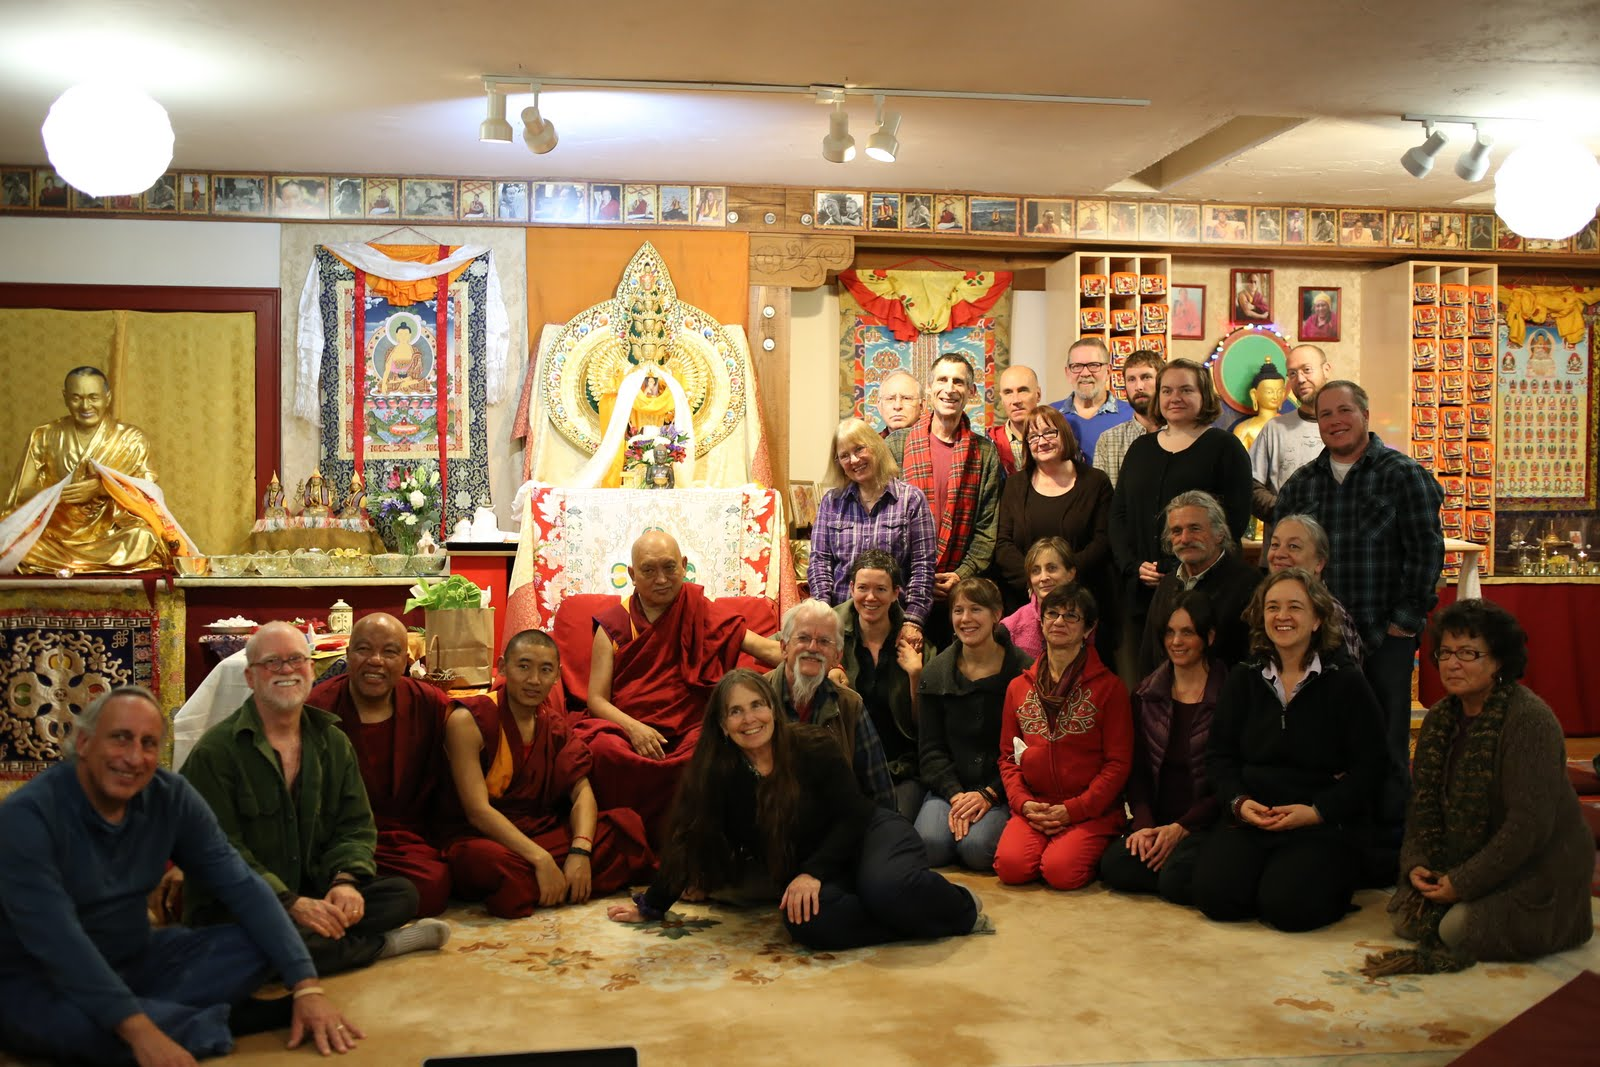 Rinpoche at Vajrapani Institute. Boulder Creek, California. November 2013. Photo by Ven. Thubten Kunsang.